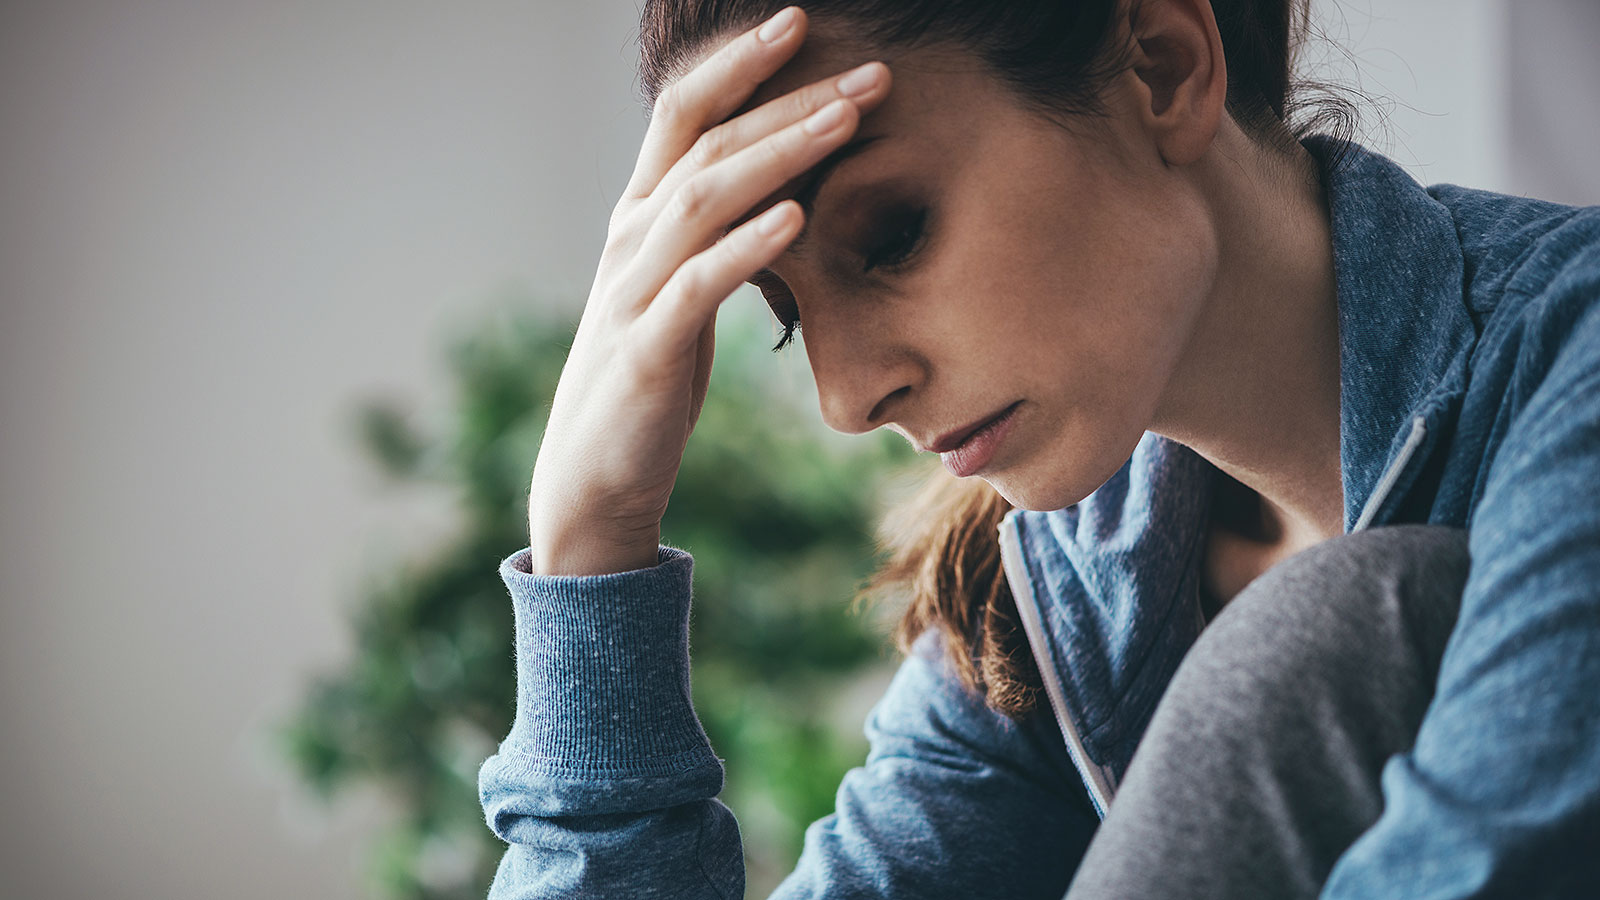 Hacks to Cope With Anxiety